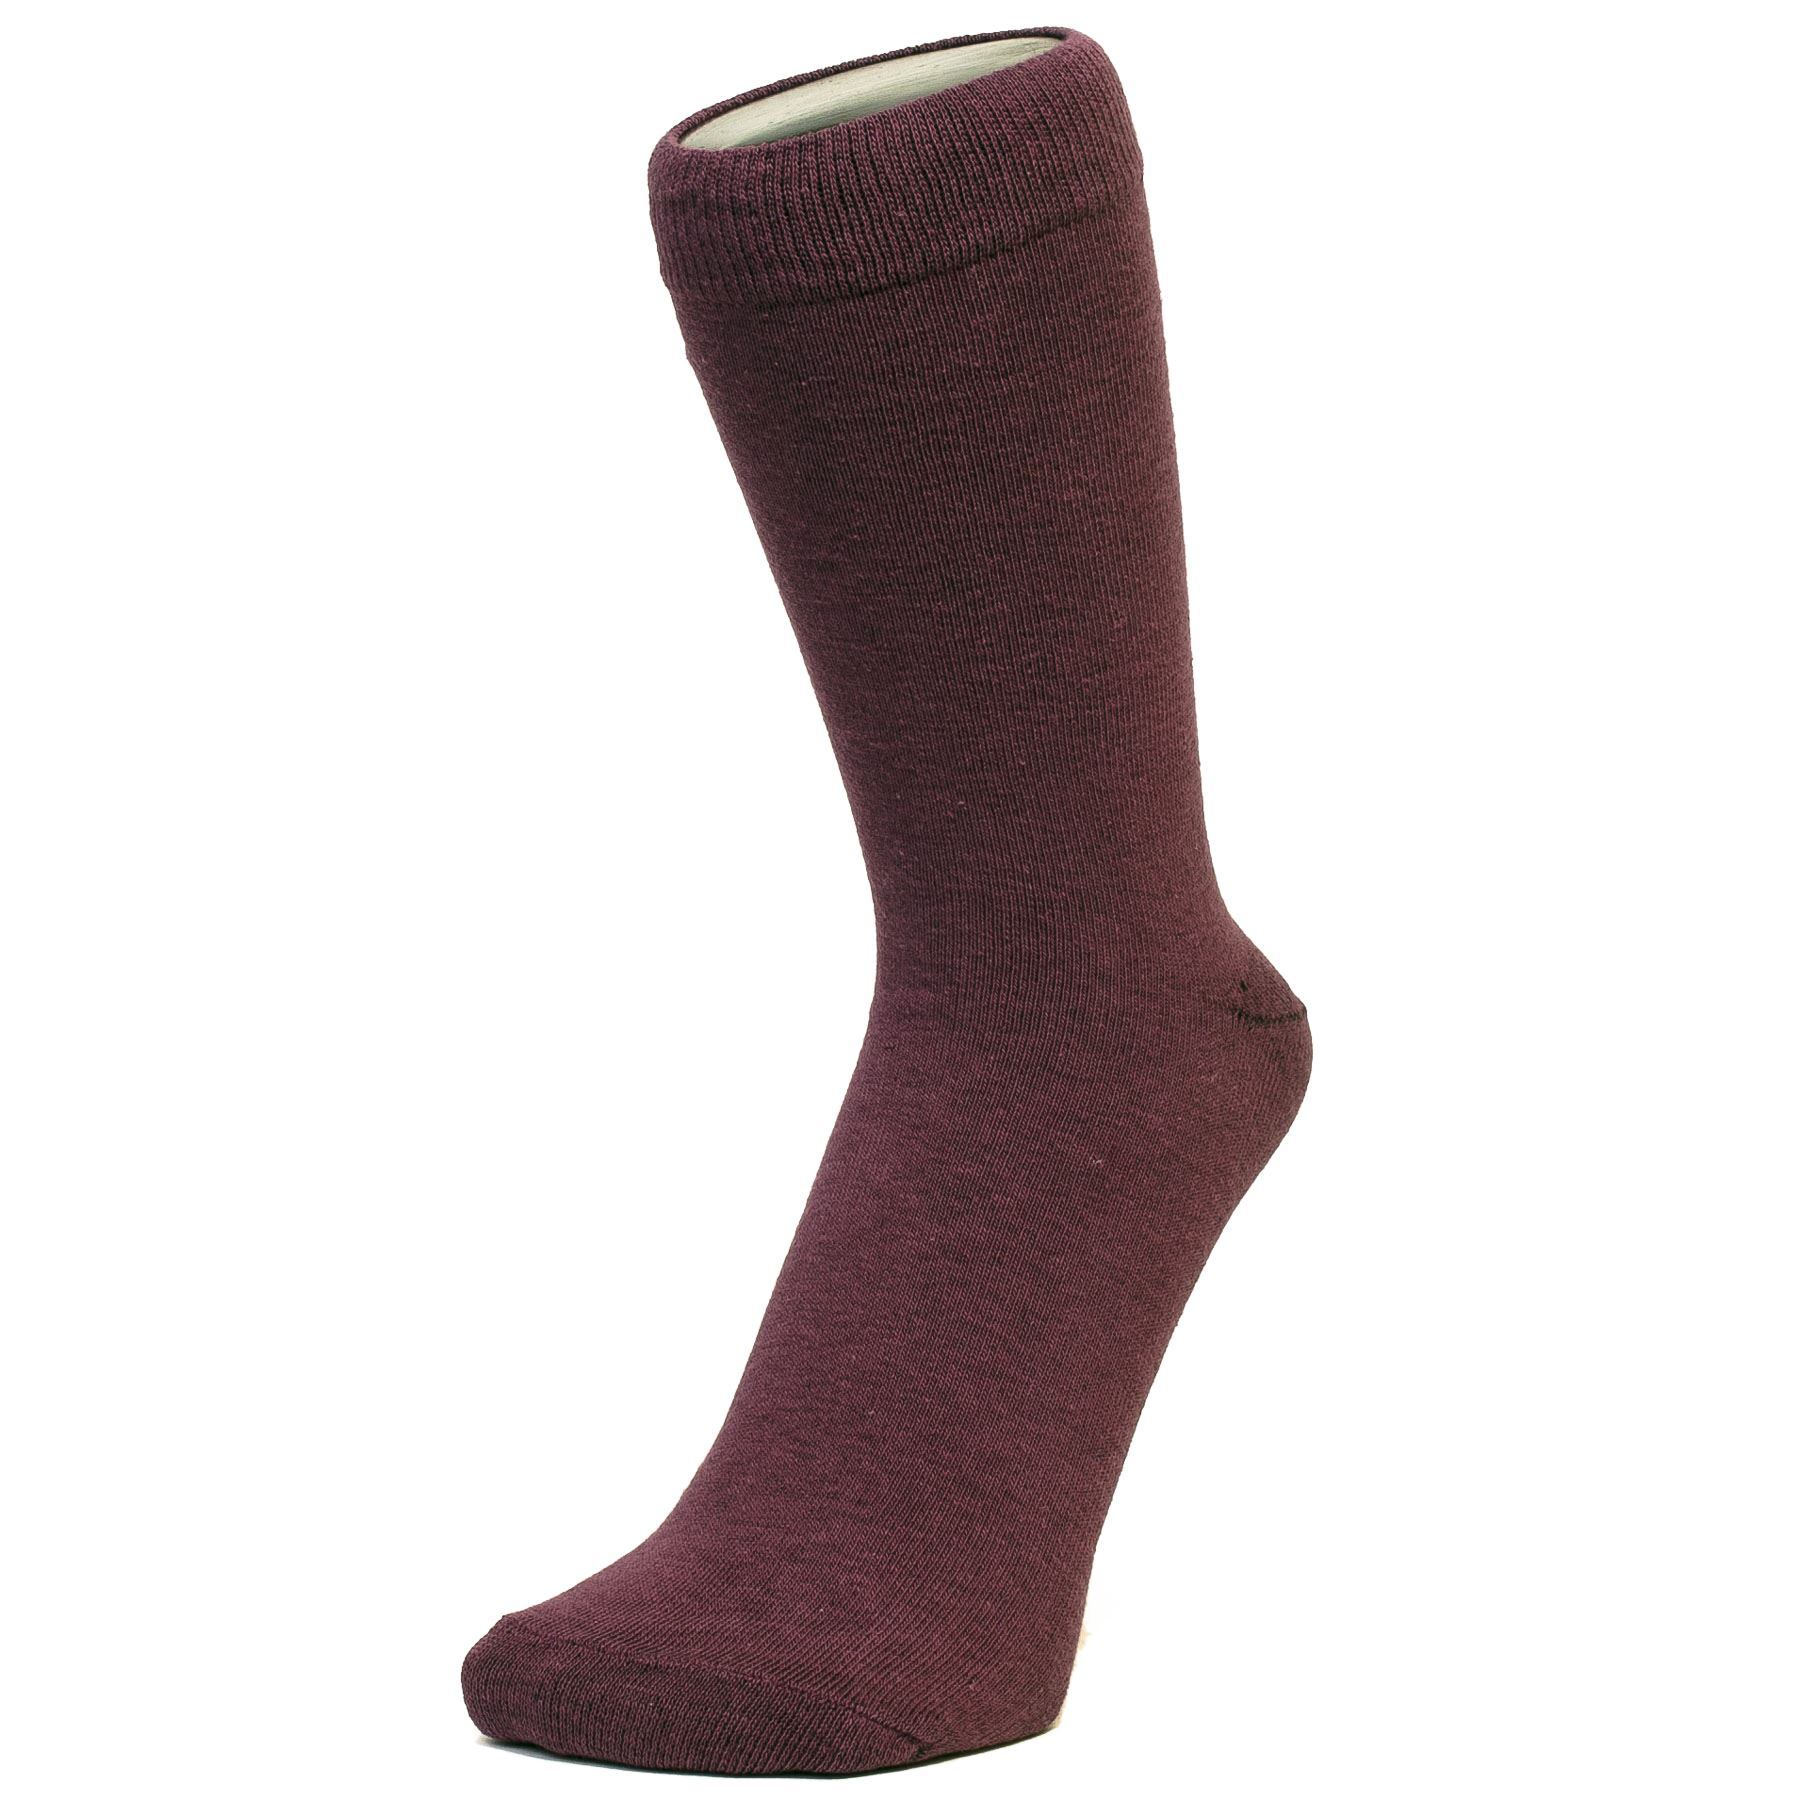 Socks Size / Approximate Age mos / Shoe Size Socks Size / Approximate Age mos / Shoe Size Socks Size / Approximate Age yrs / Shoe Size Please take into consideration whether your child is larger or smaller than average or has a larger or smaller foot size than generally expected at that age.